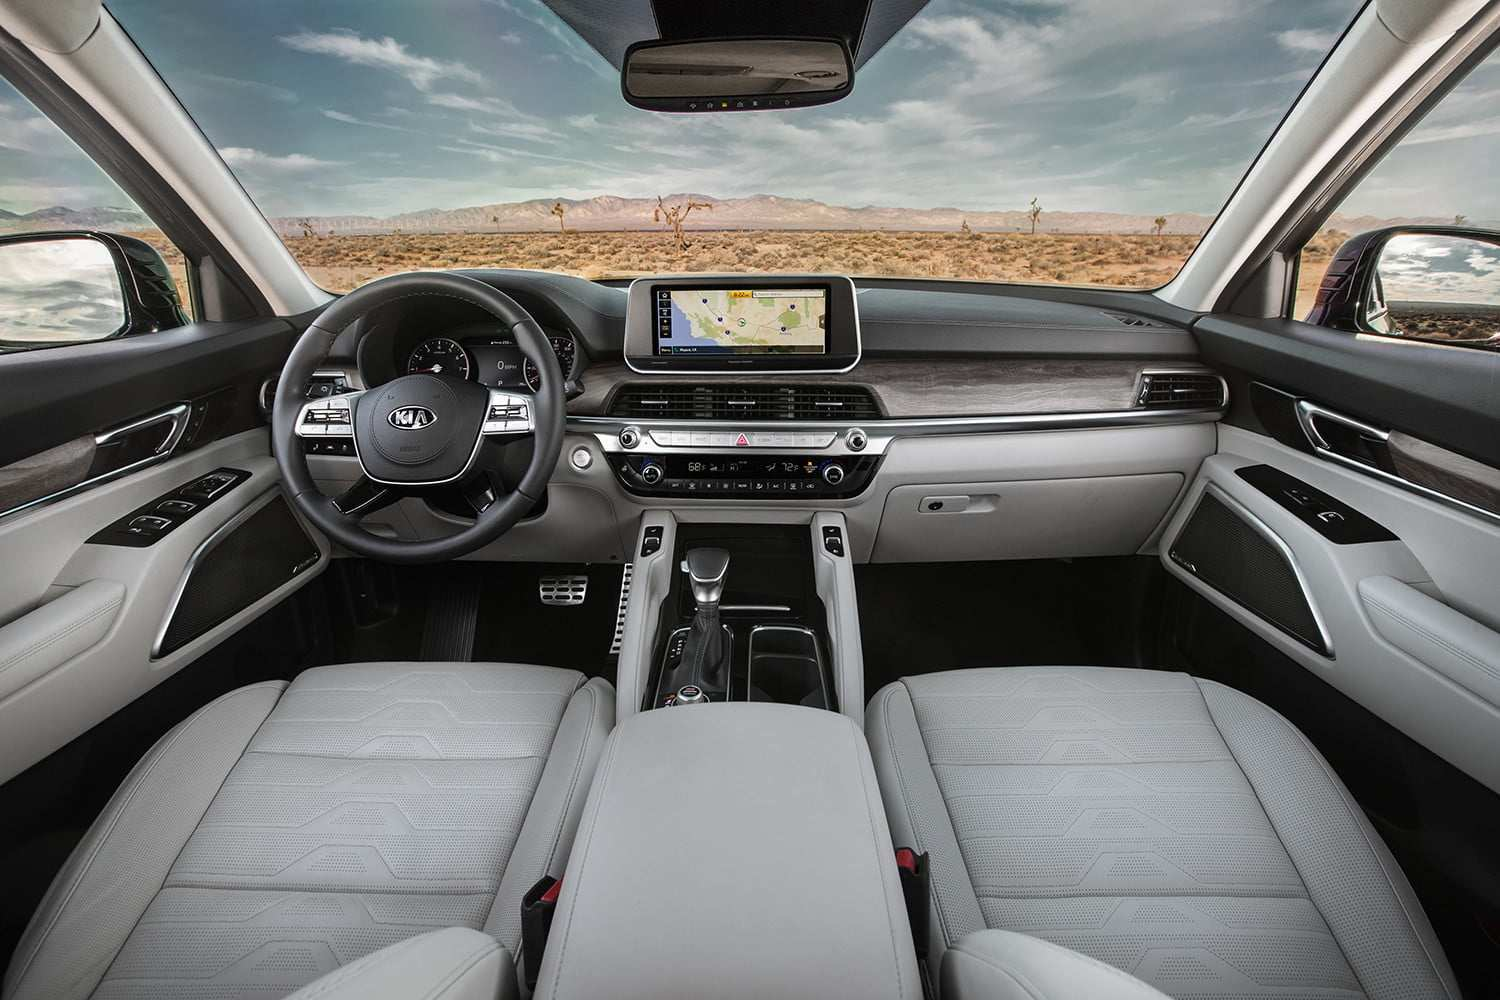 36 Best Review 2020 Kia Telluride Sx Interior Spy Shoot by 2020 Kia Telluride Sx Interior